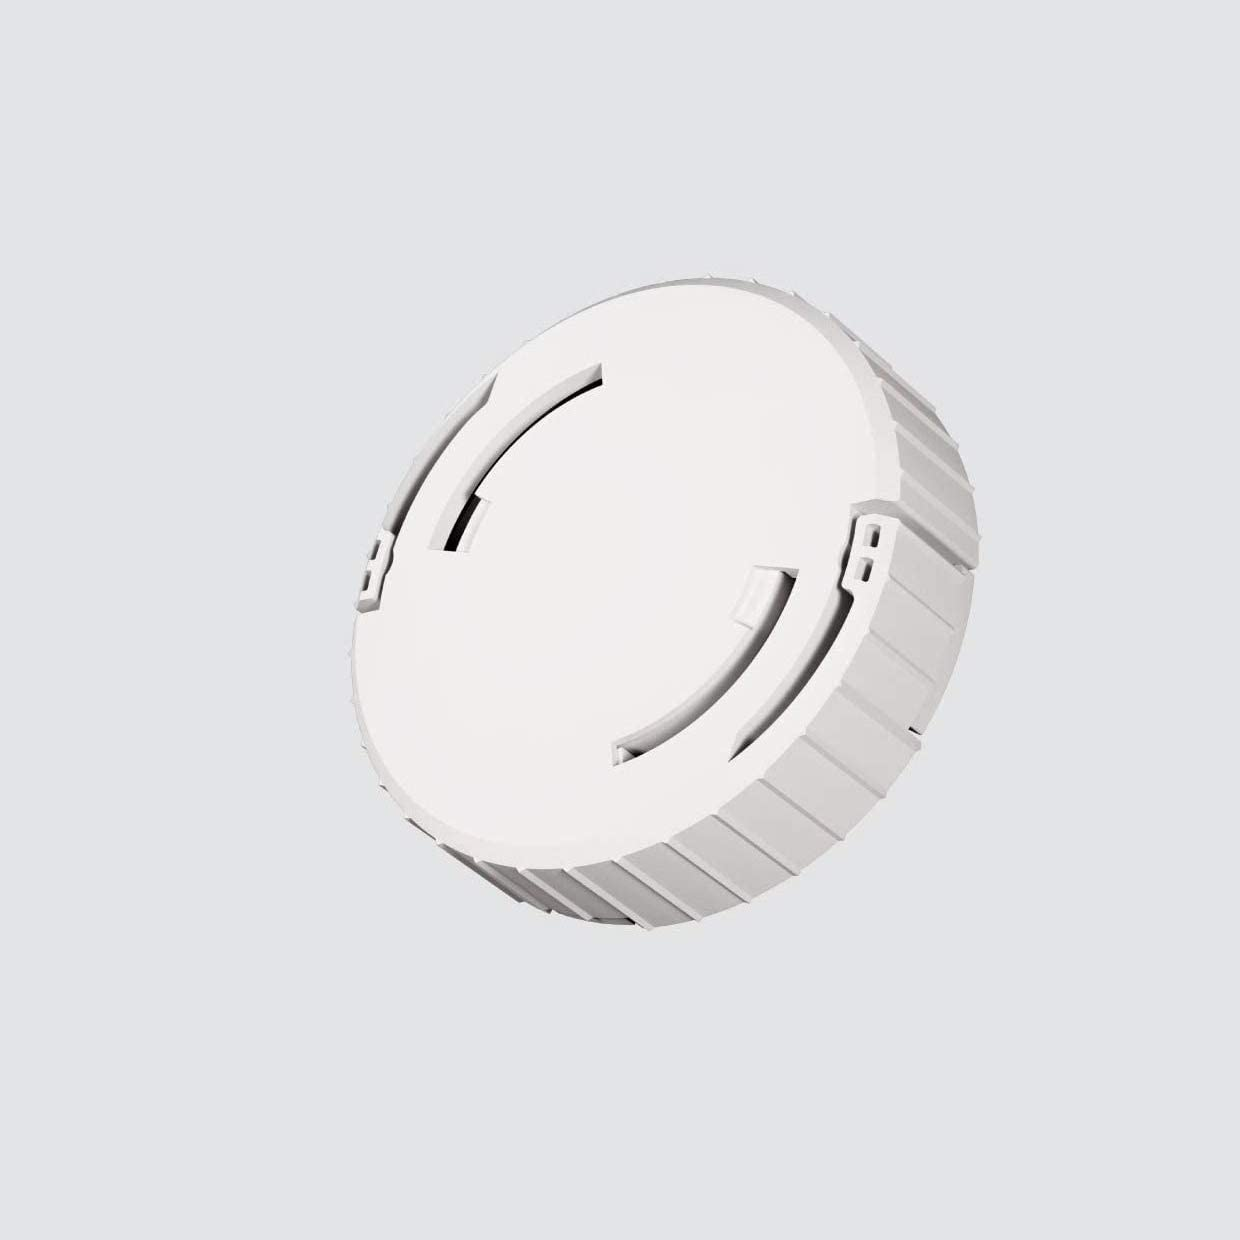 Eggtronic Invisa-Qi - 10W - Forget The Cables and Turn Any Piece of Furniture into a Wireless Charging spot for Smartphone, Qi Wireless Certified - Designed in Italy